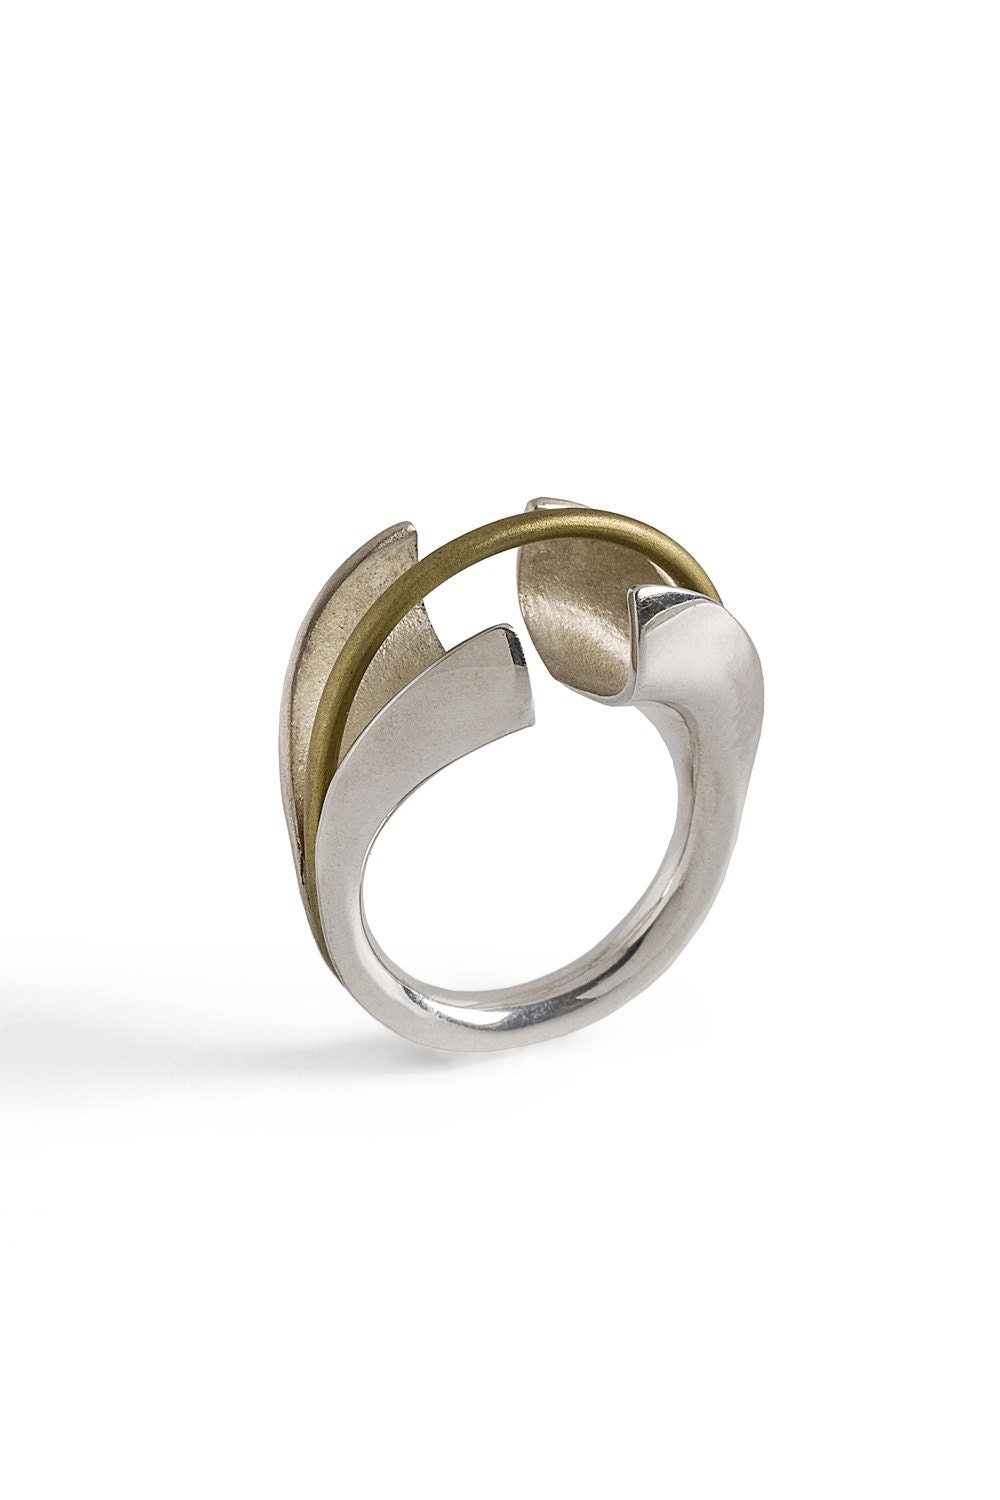 contemporary statement silver ring modern ring adjustable